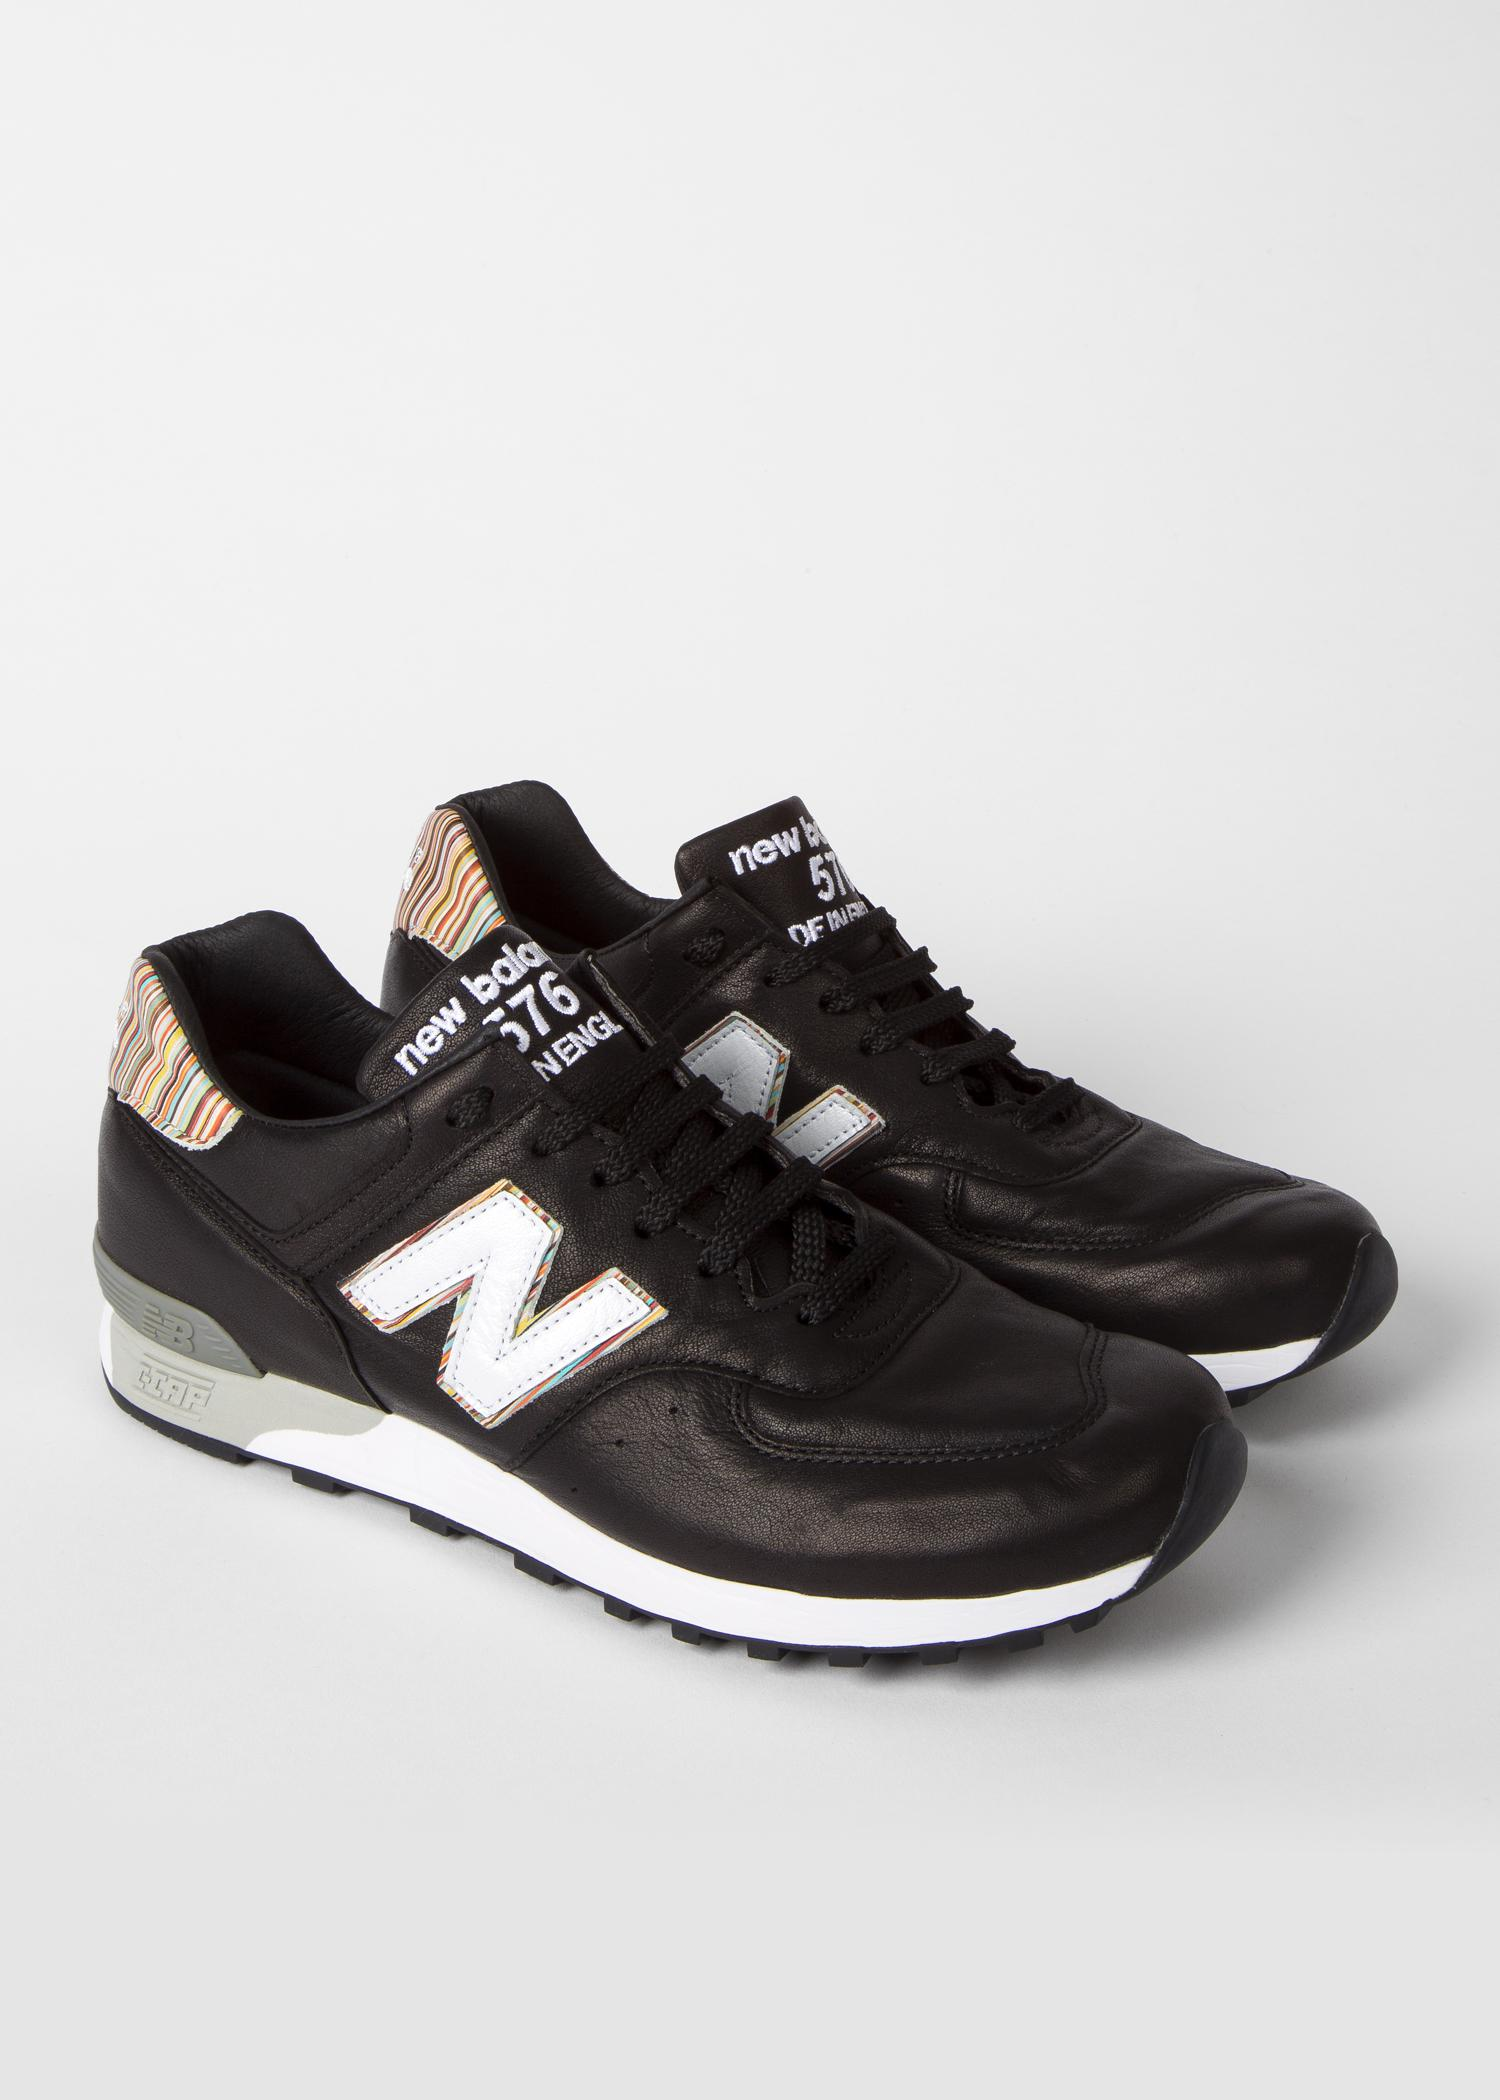 watch dee24 605a2 Paul Smith New Balance - Black Leather 576 Trainers for men